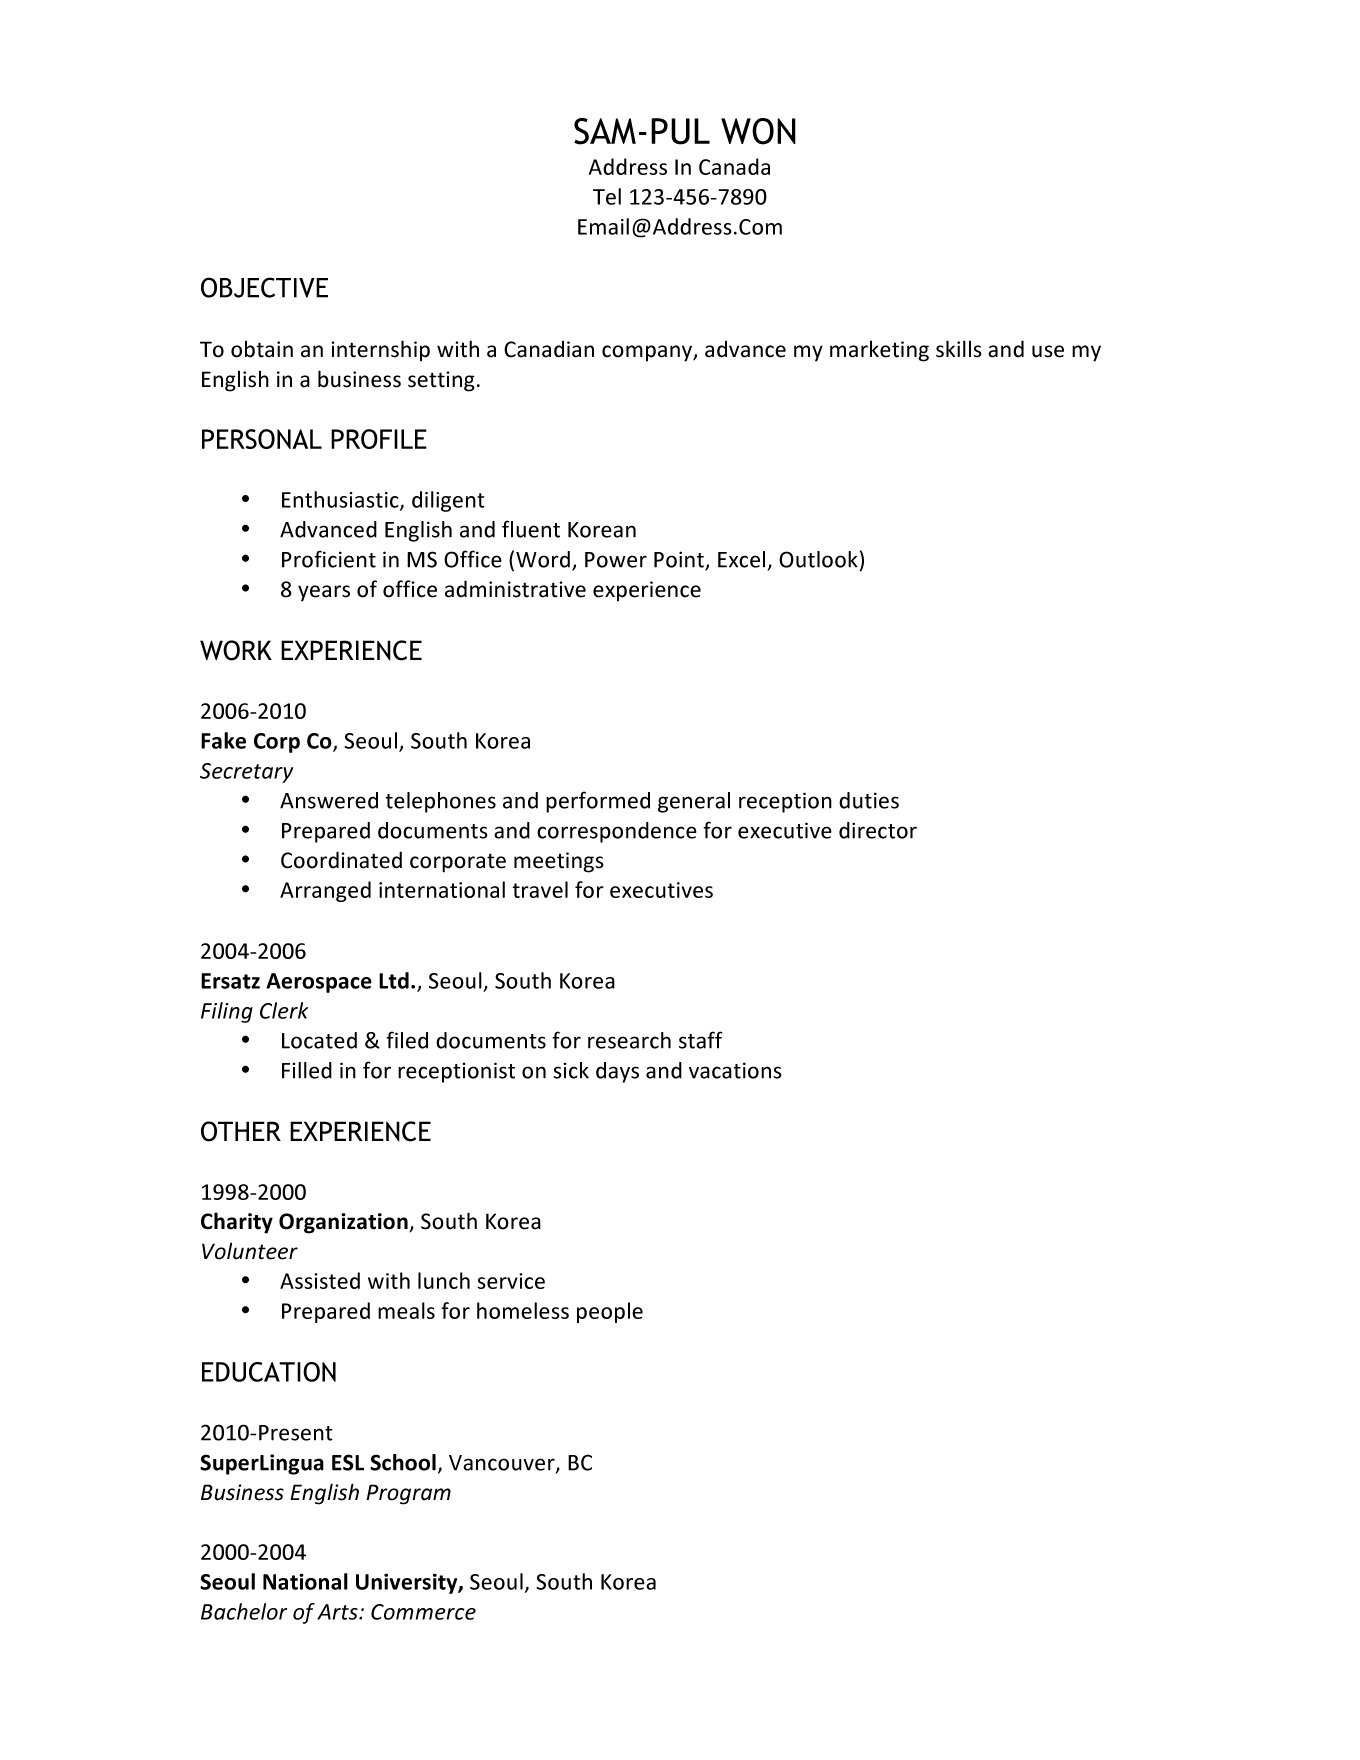 legal internship resume objective examples resume builder legal internship resume objective examples legal resume samples and tips for an effective resume resume examples